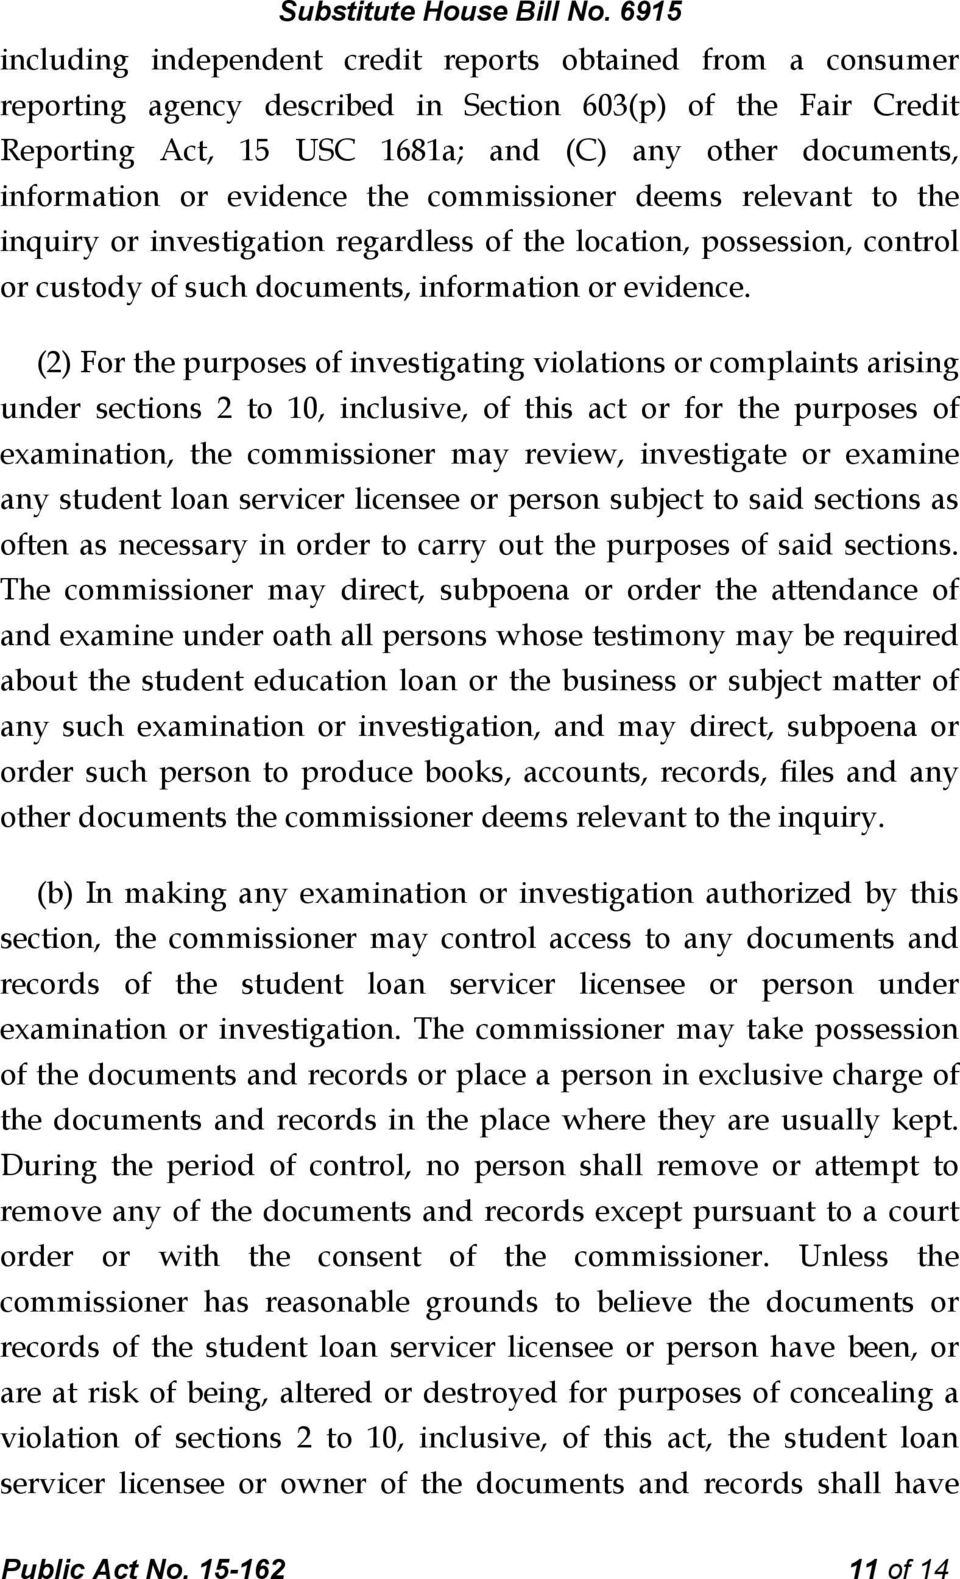 (2) For the purposes of investigating violations or complaints arising under sections 2 to 10, inclusive, of this act or for the purposes of examination, the commissioner may review, investigate or